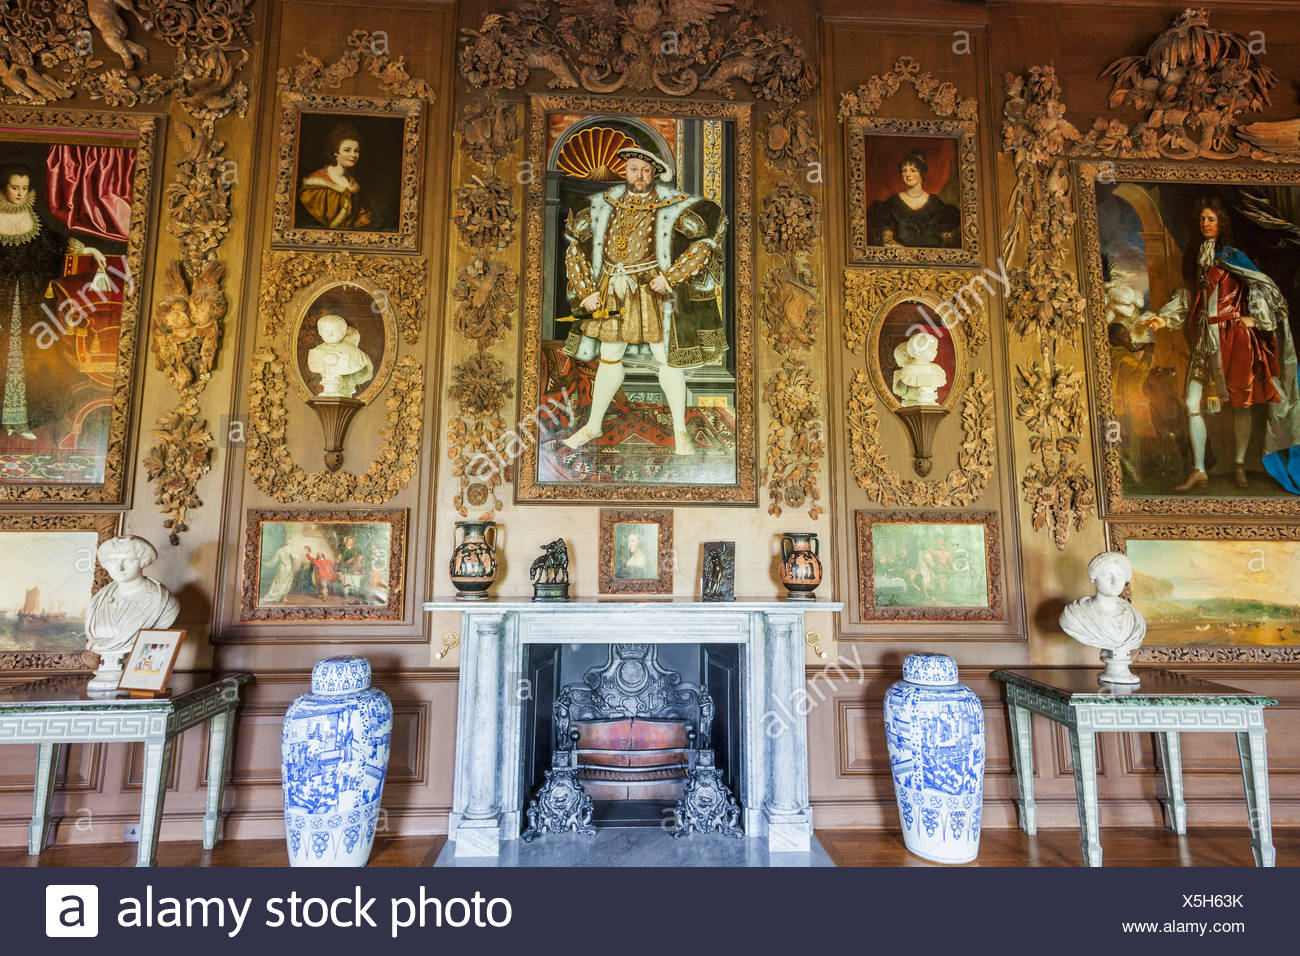 England, West Sussex, Petworth, Petworth House, The Carved Room, Portrait of Henry VIII, - Stock Image